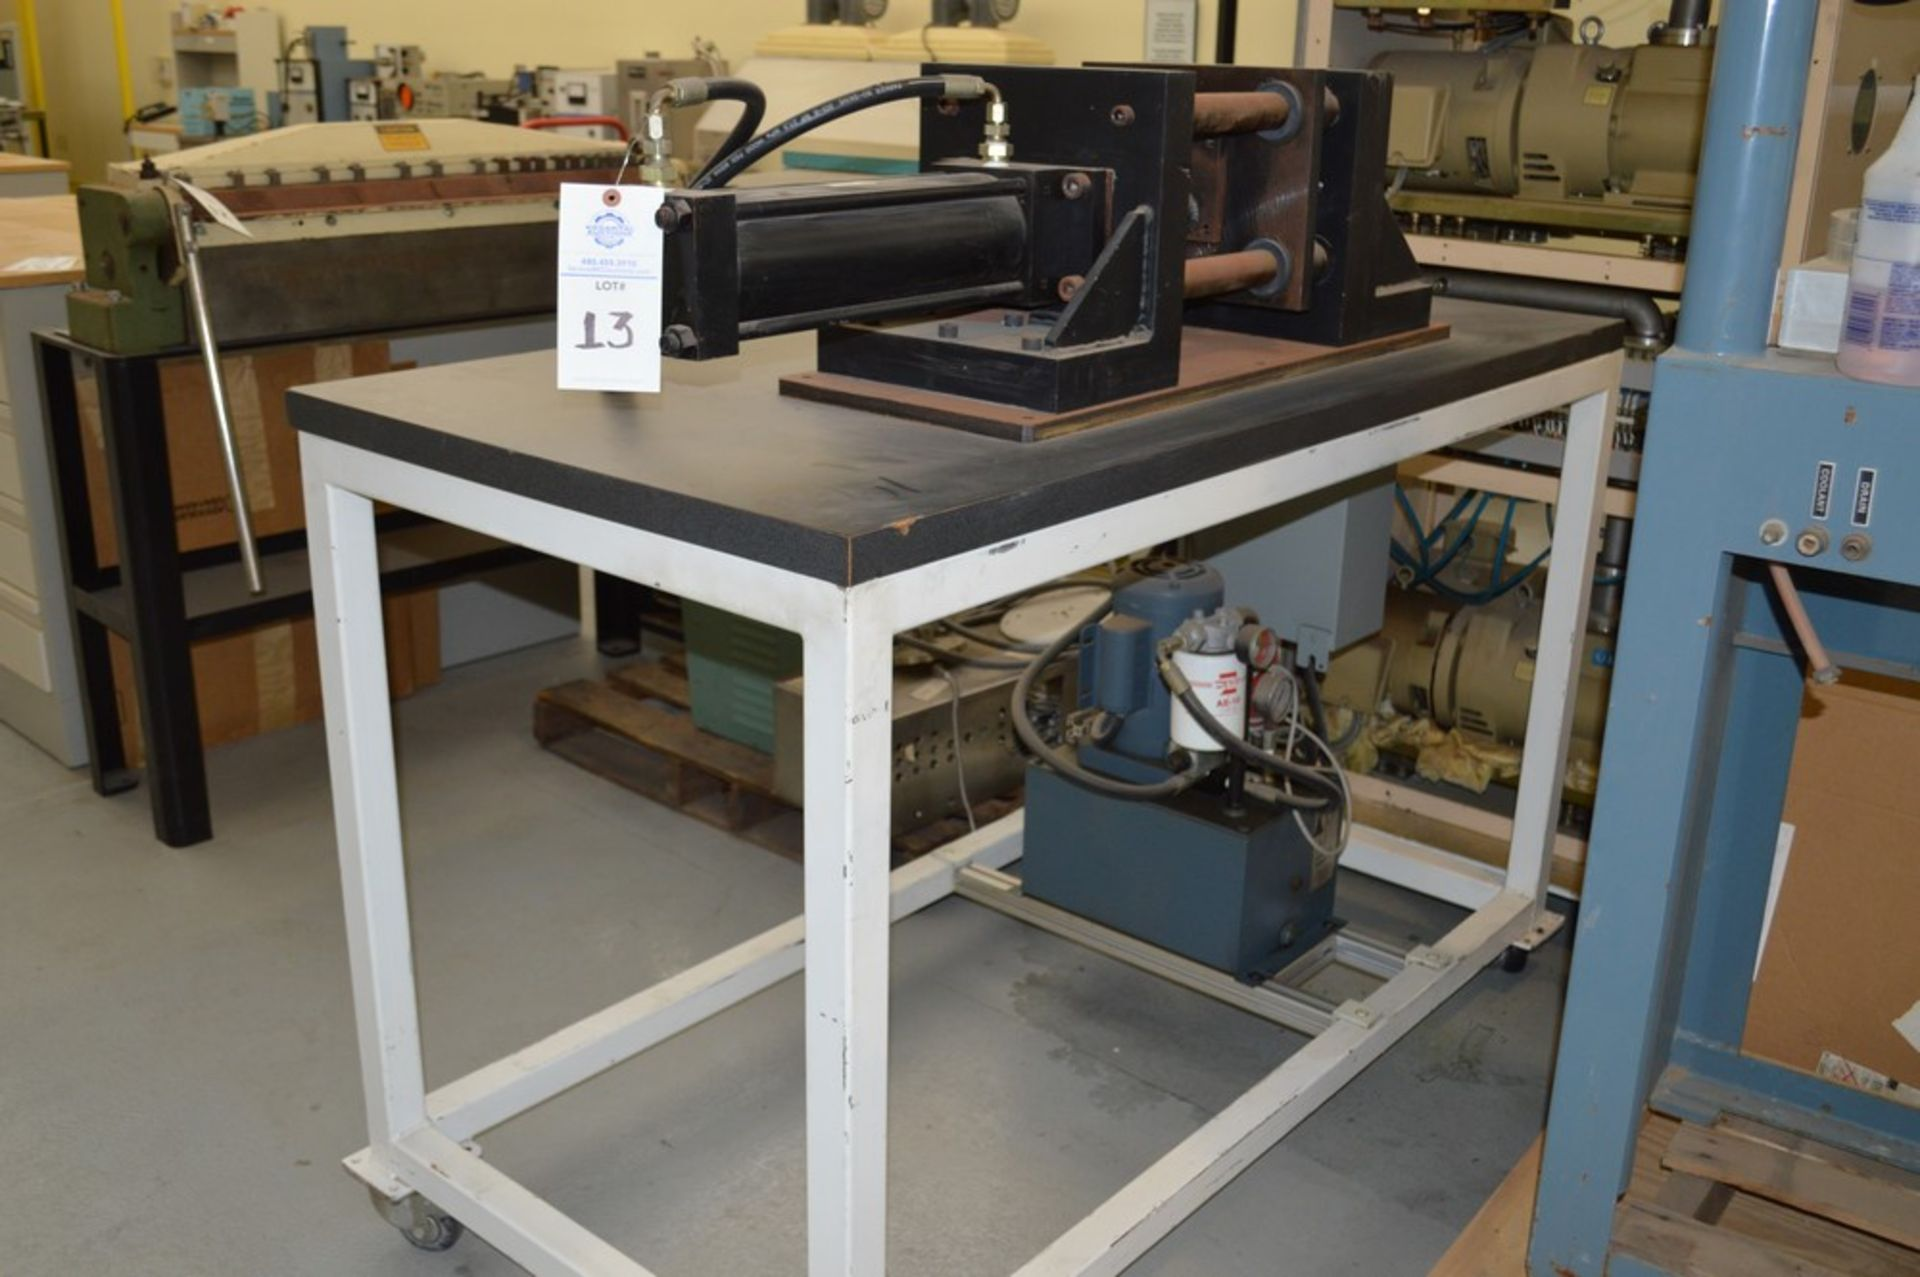 4 Post horizontal press with stand, 3000 psi, RAM speed controls - Image 3 of 8